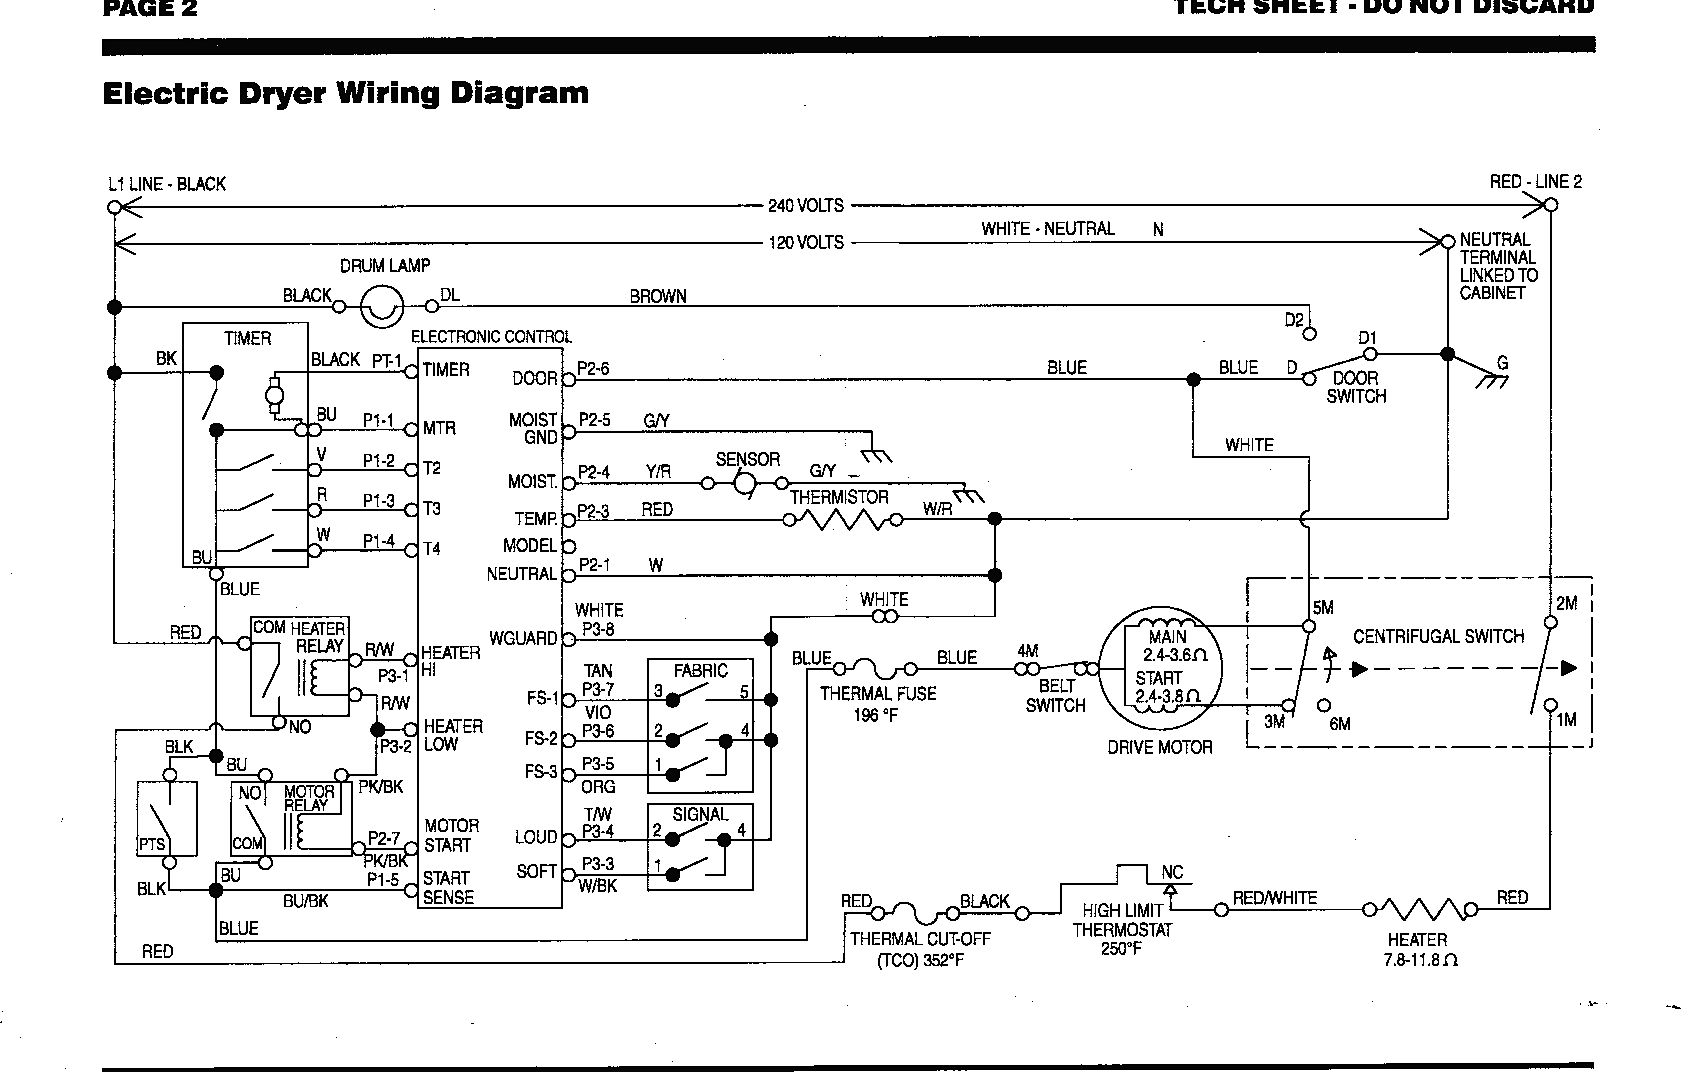 Wiring Diagram For Sears Dryers